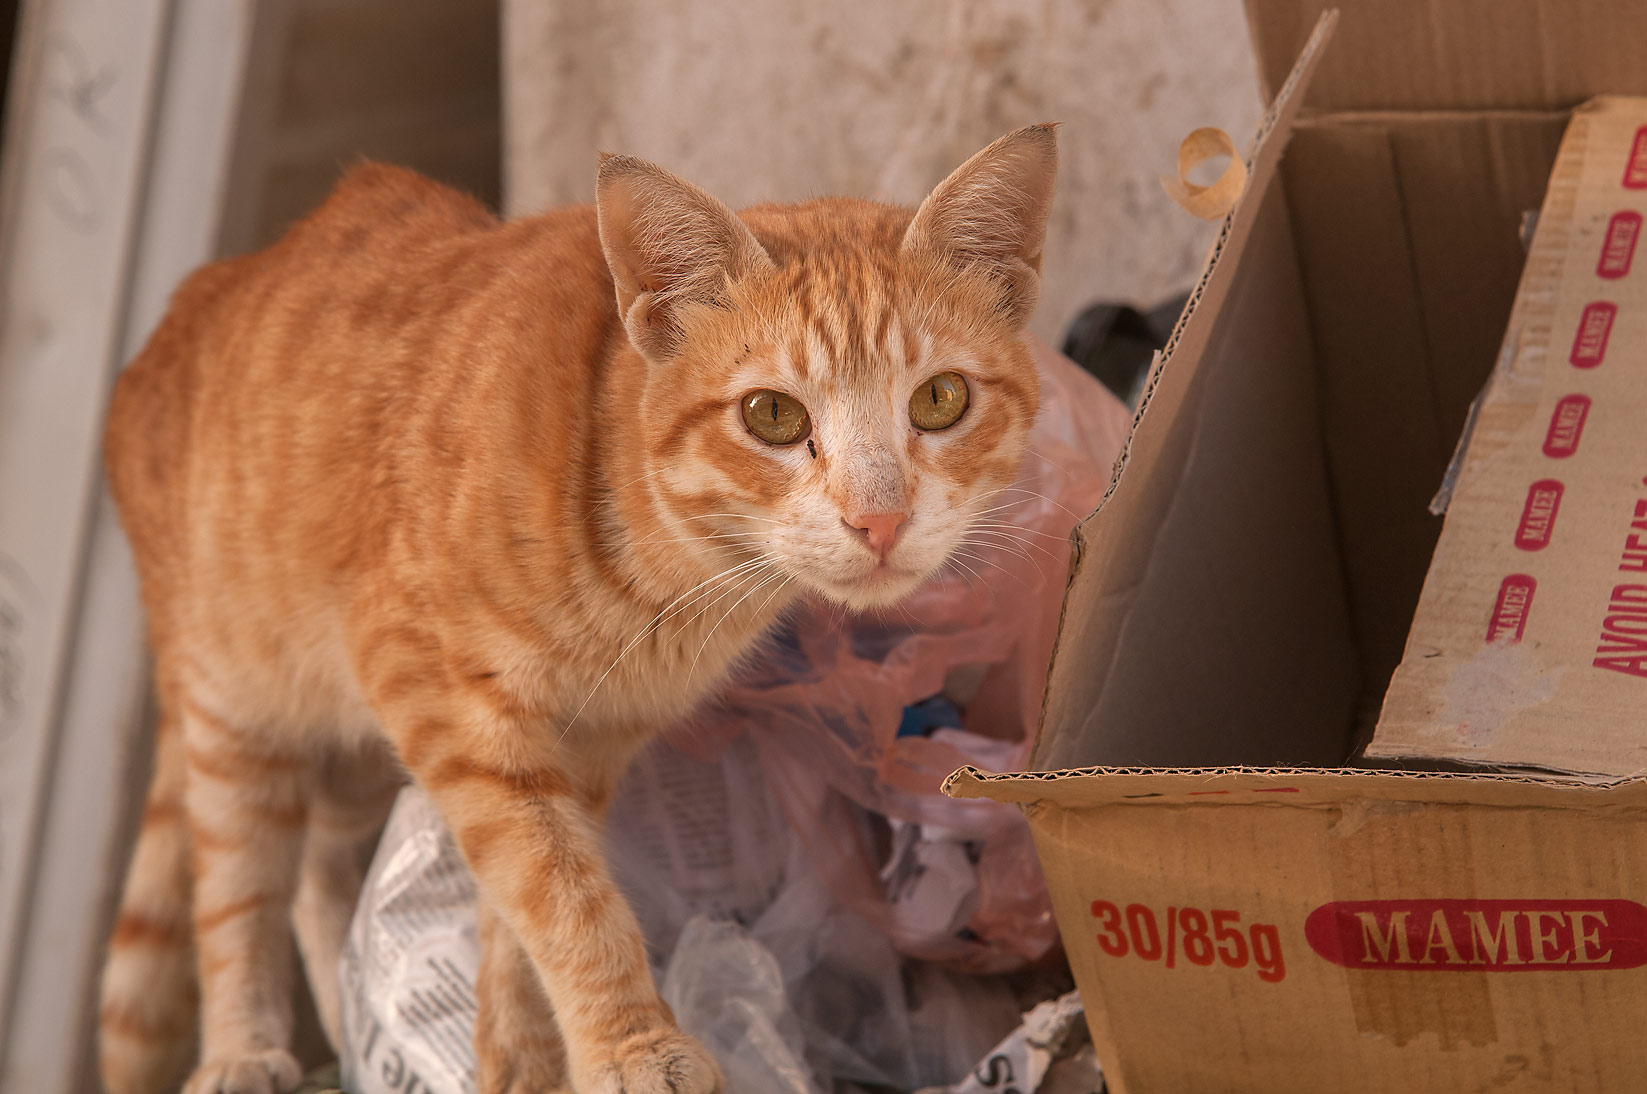 Brown cat among trash, Musheirib area. Doha, Qatar